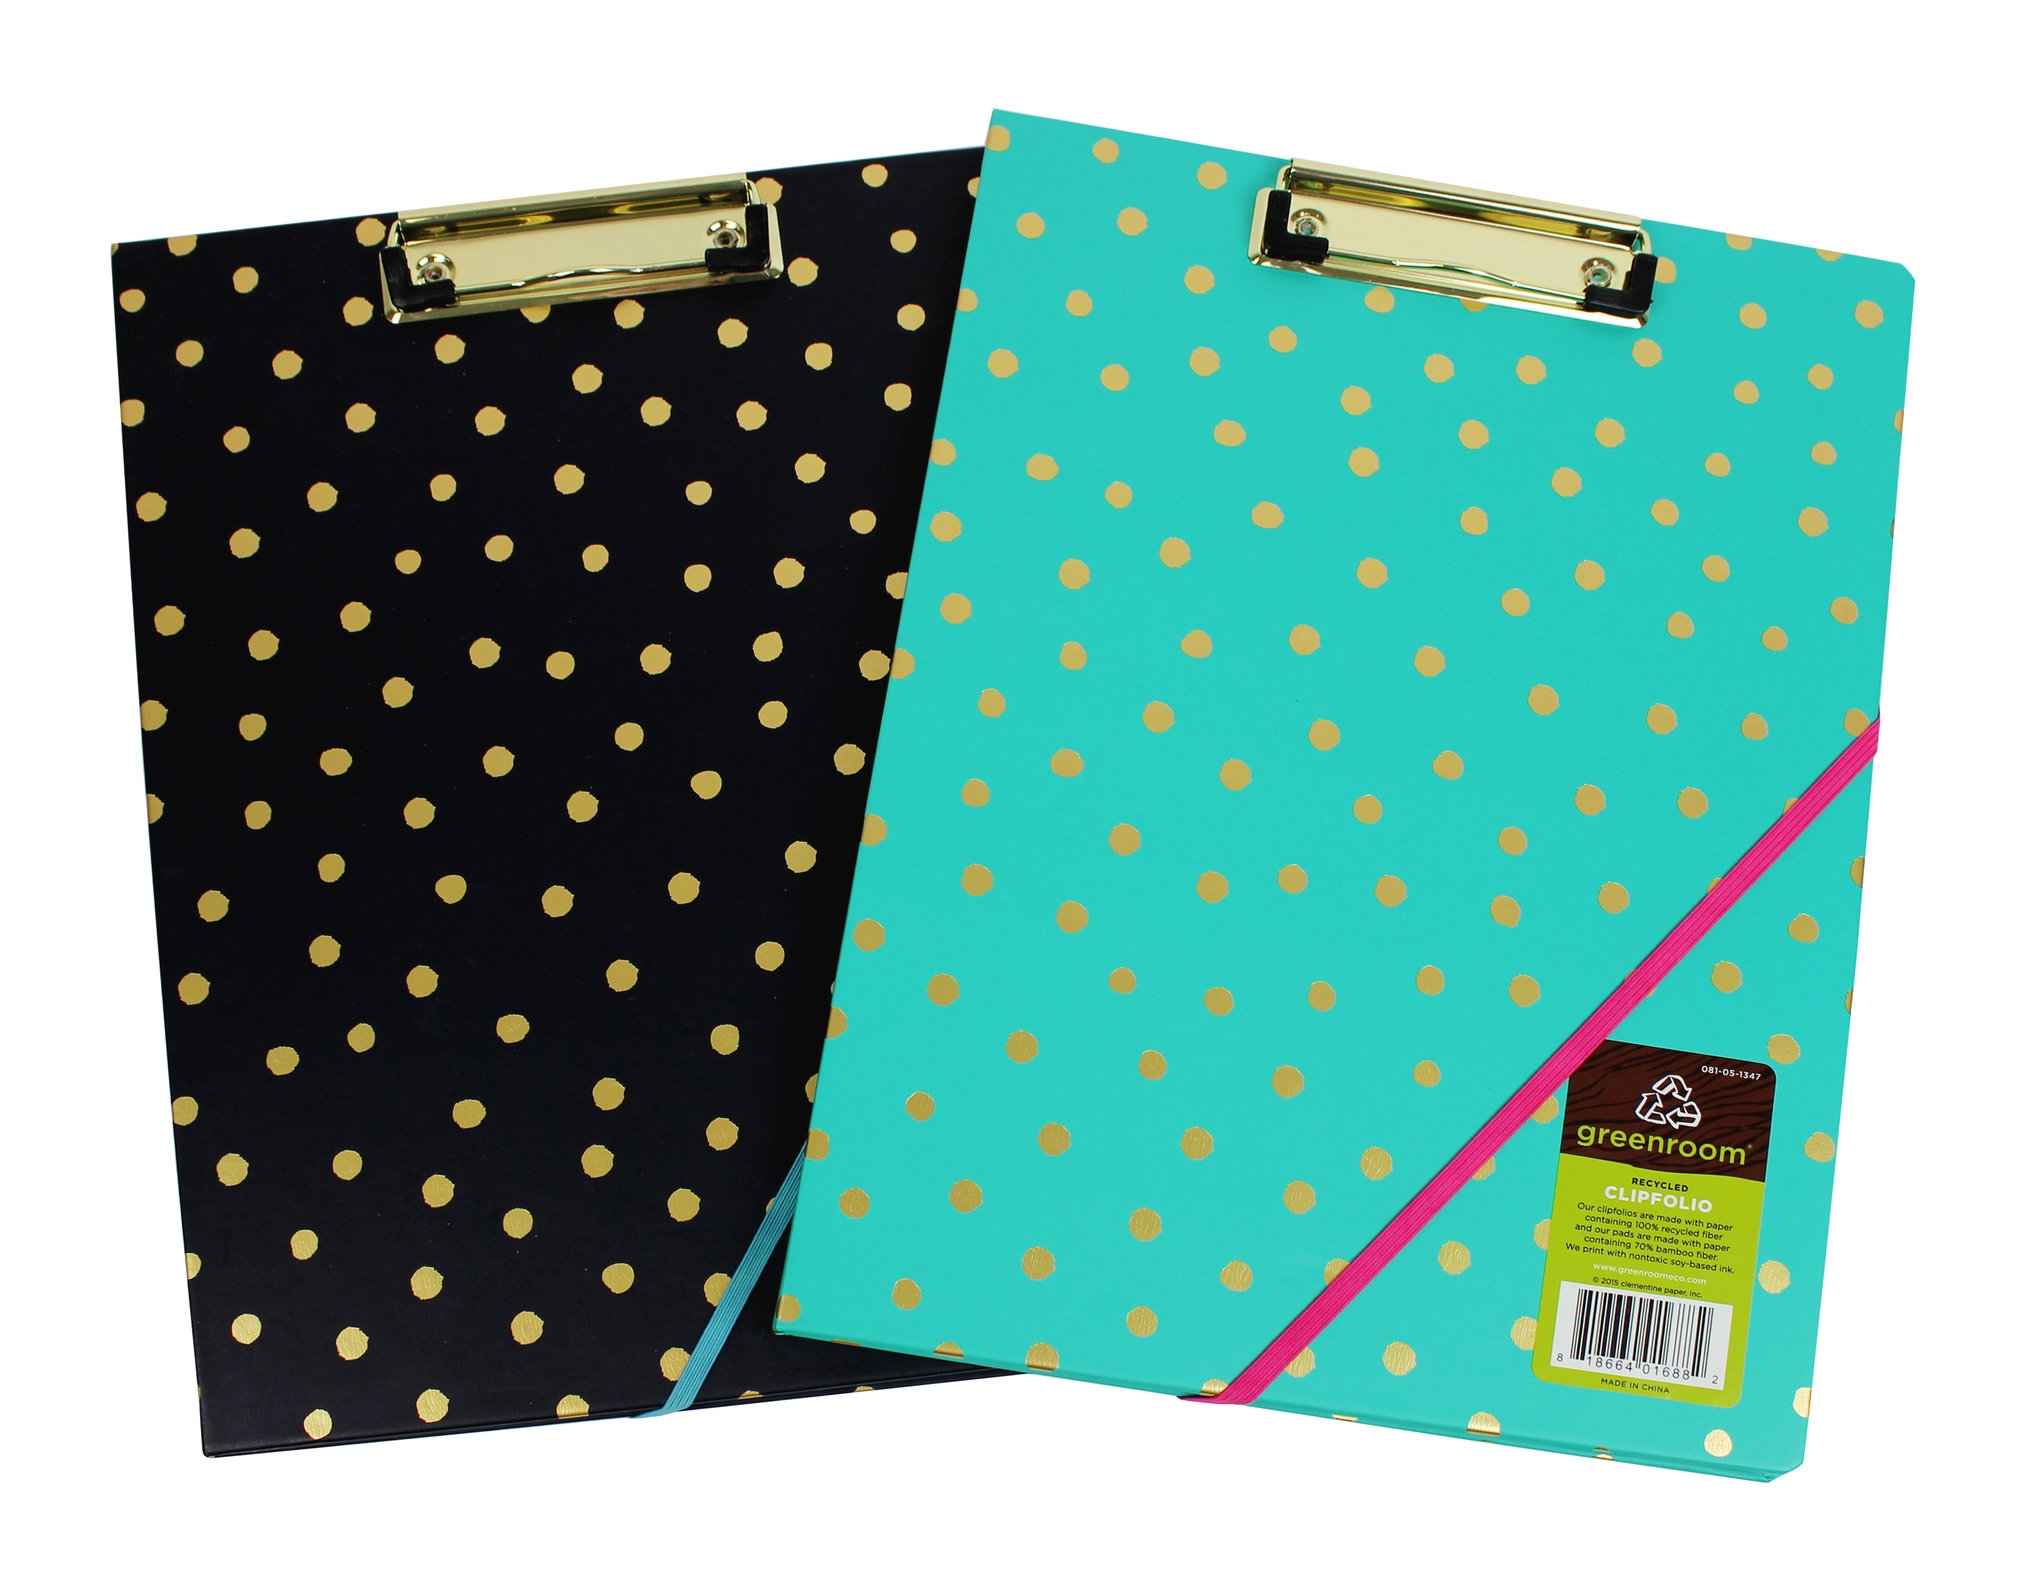 Clipfolio with Gold Metallic Dots // Greenroom, available at Targetots